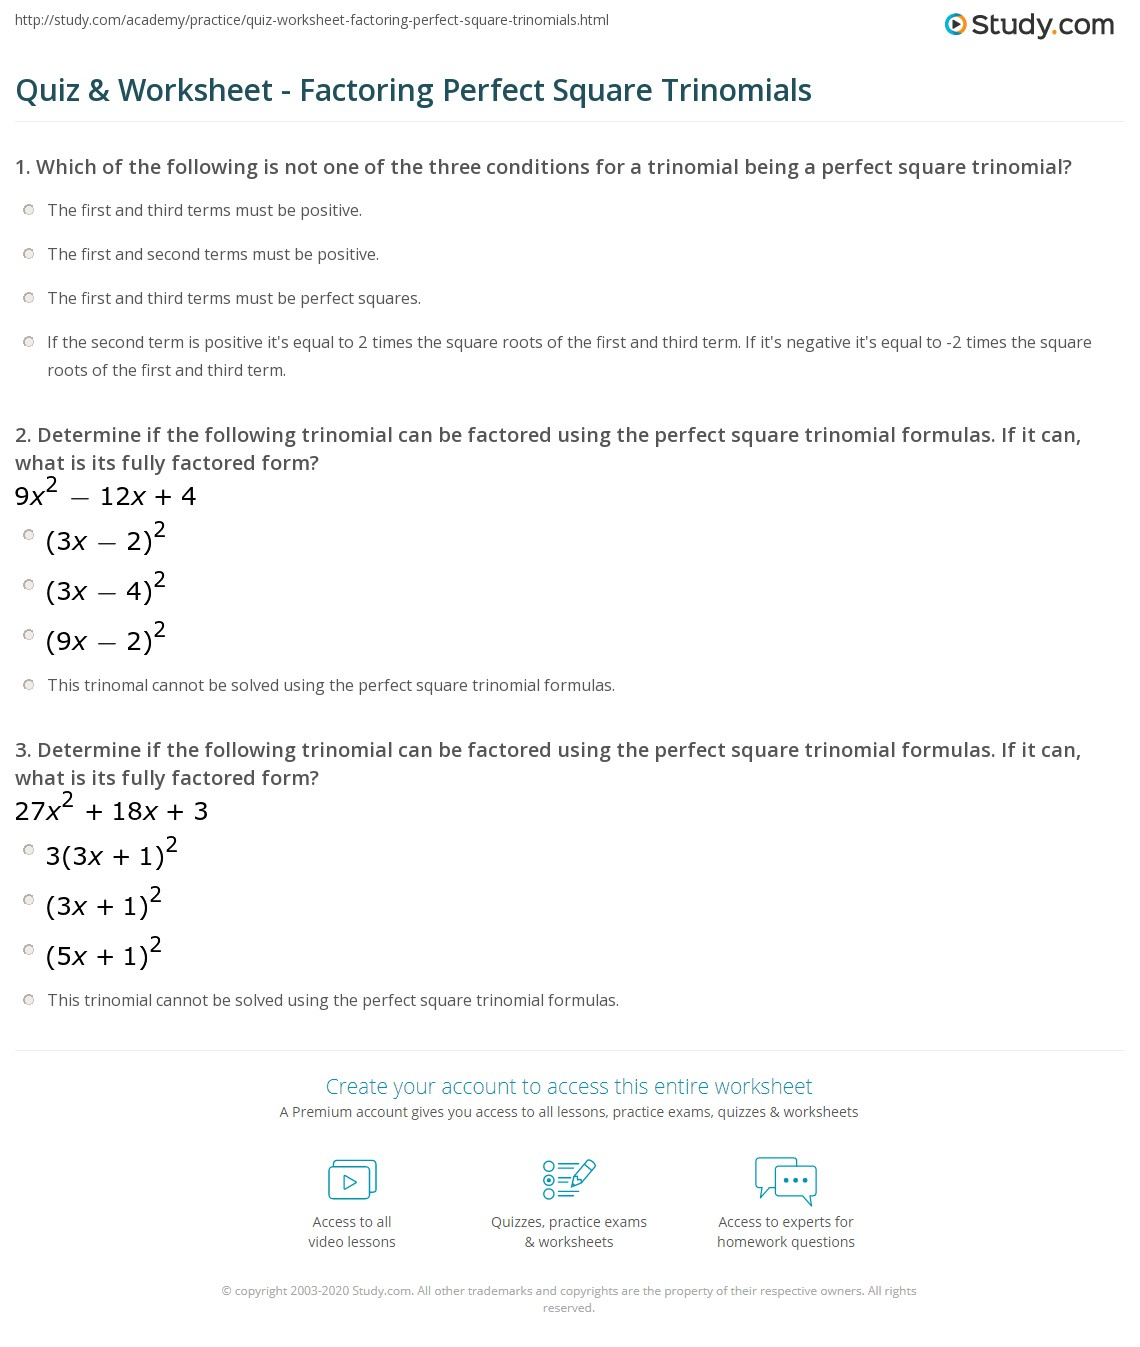 worksheet Factoring Perfect Square Trinomials Worksheet quiz worksheet factoring perfect square trinomials study com print practice problems worksheet